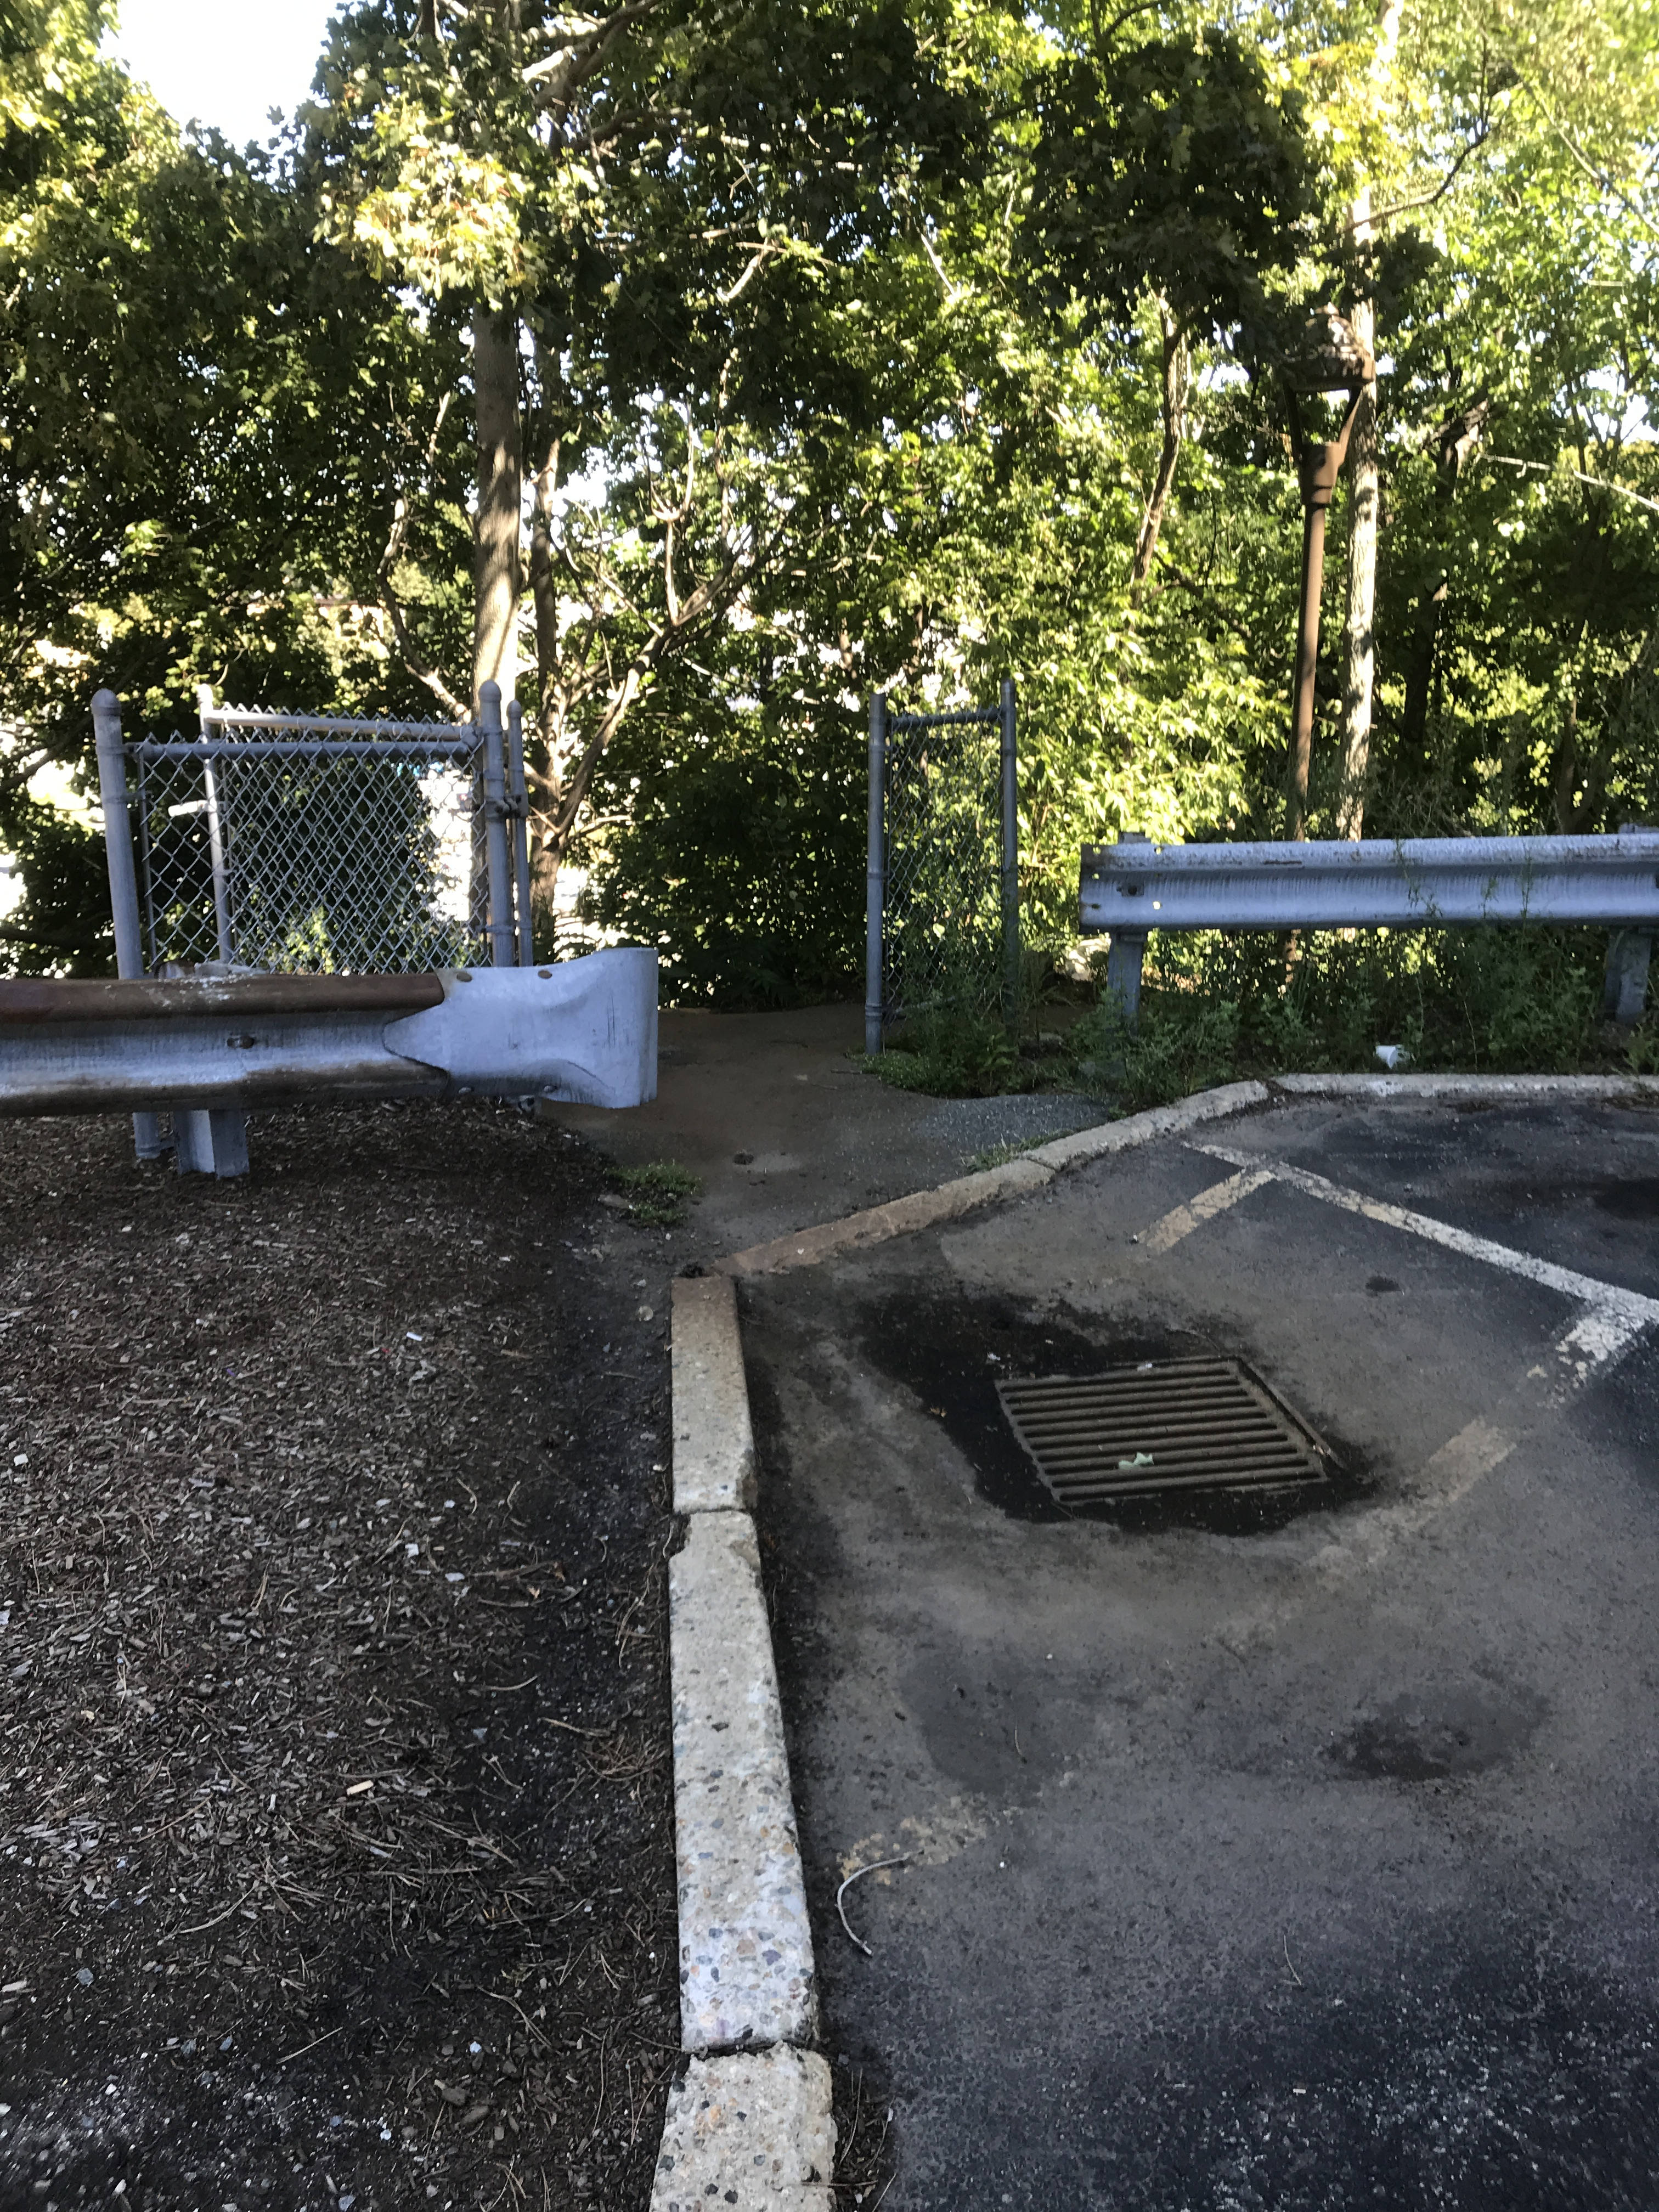 A small break between two guard rails reveals two freestanding sections of fence with an open gate between them. In front of the opening is a storm drain with a muddy puddle drying around it.